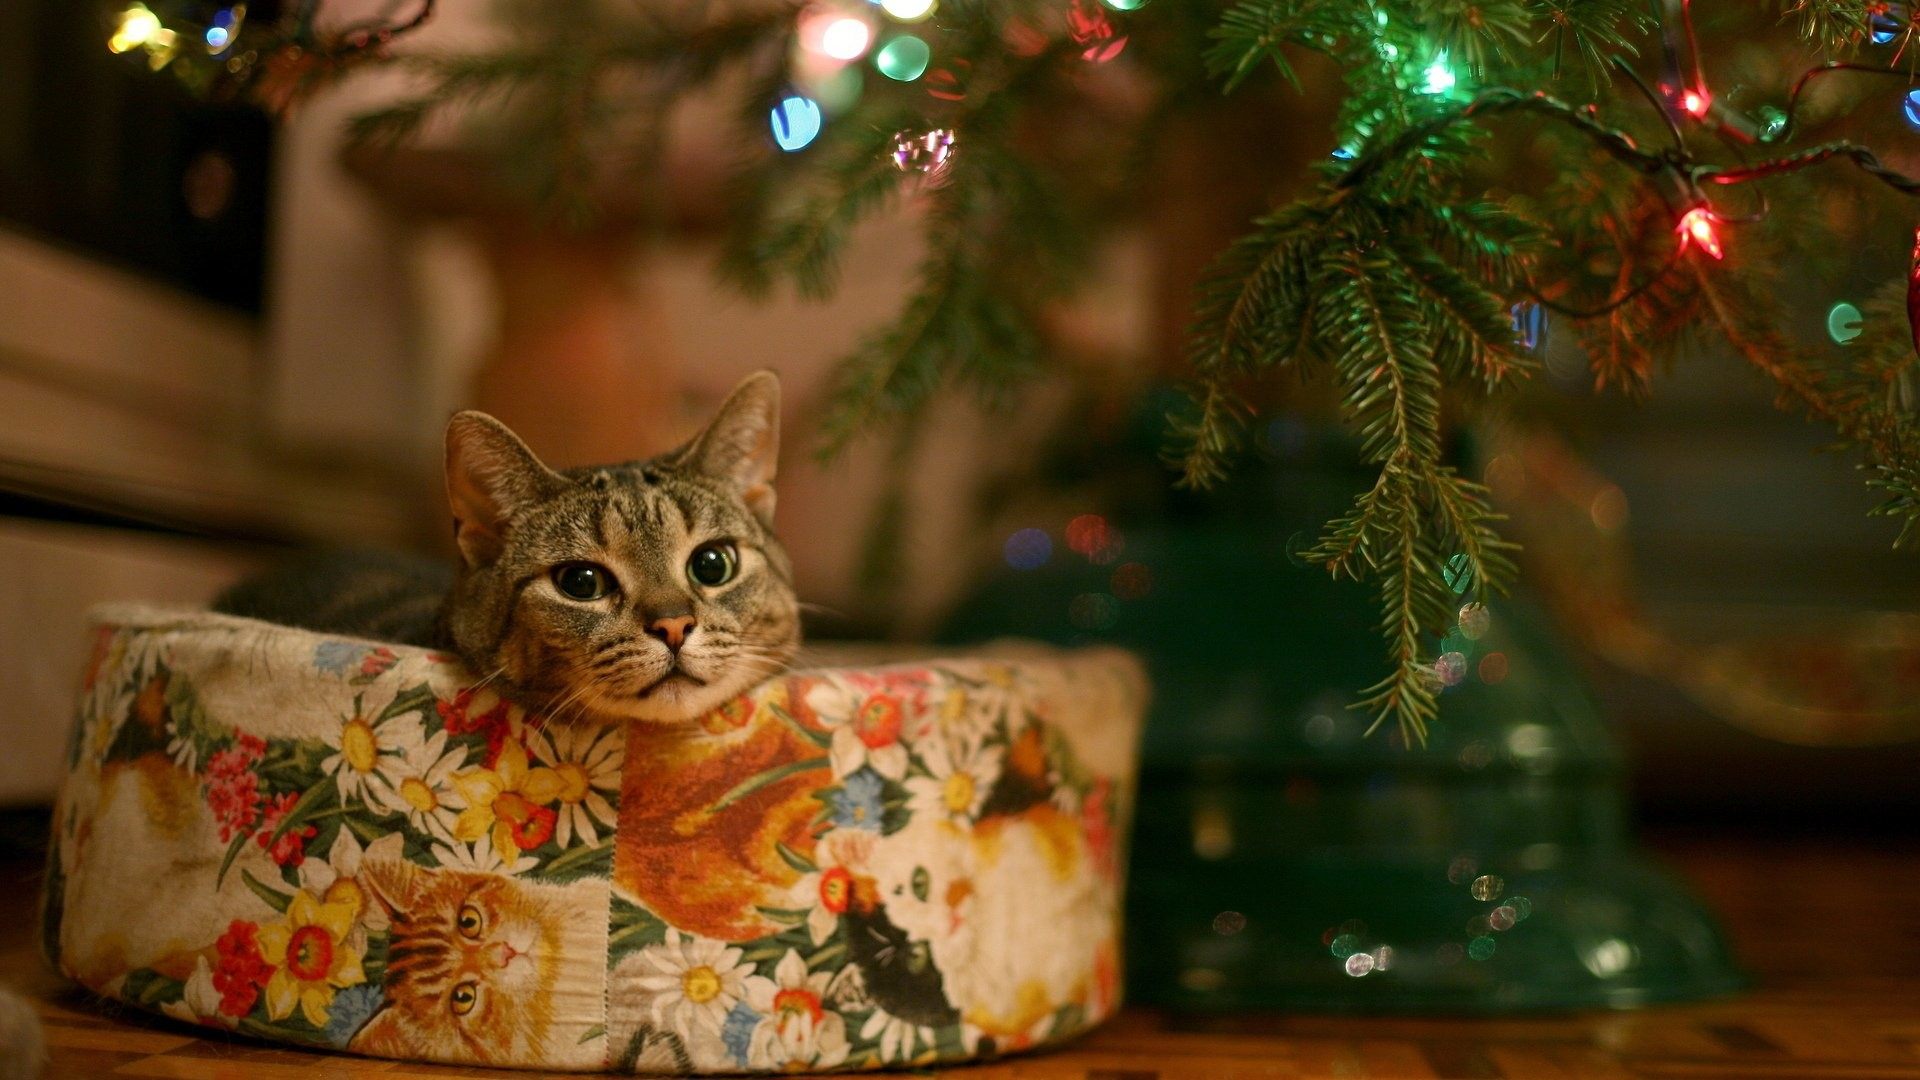 Res: 1920x1080, HD Wallpaper | Background Image ID:93669.  Holiday Christmas